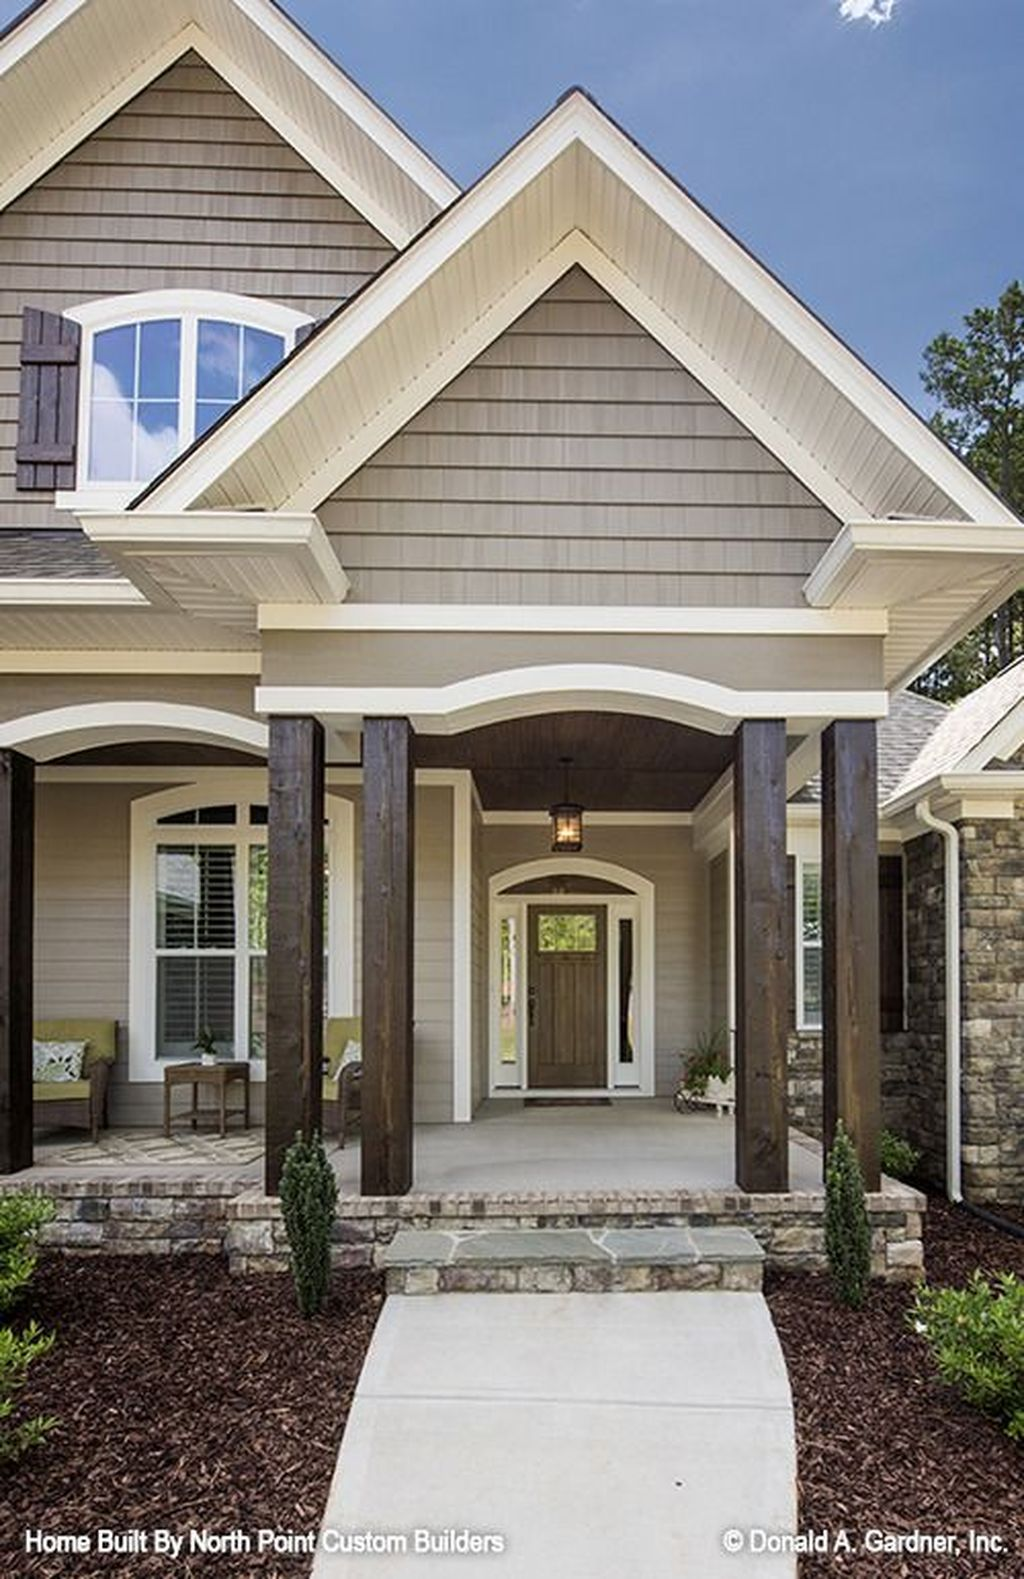 16 Enchanting Modern Entrance Designs That Boost The Appeal Of The Home: 59 Adorable Exterior House Porch Ideas Using Stone Columns